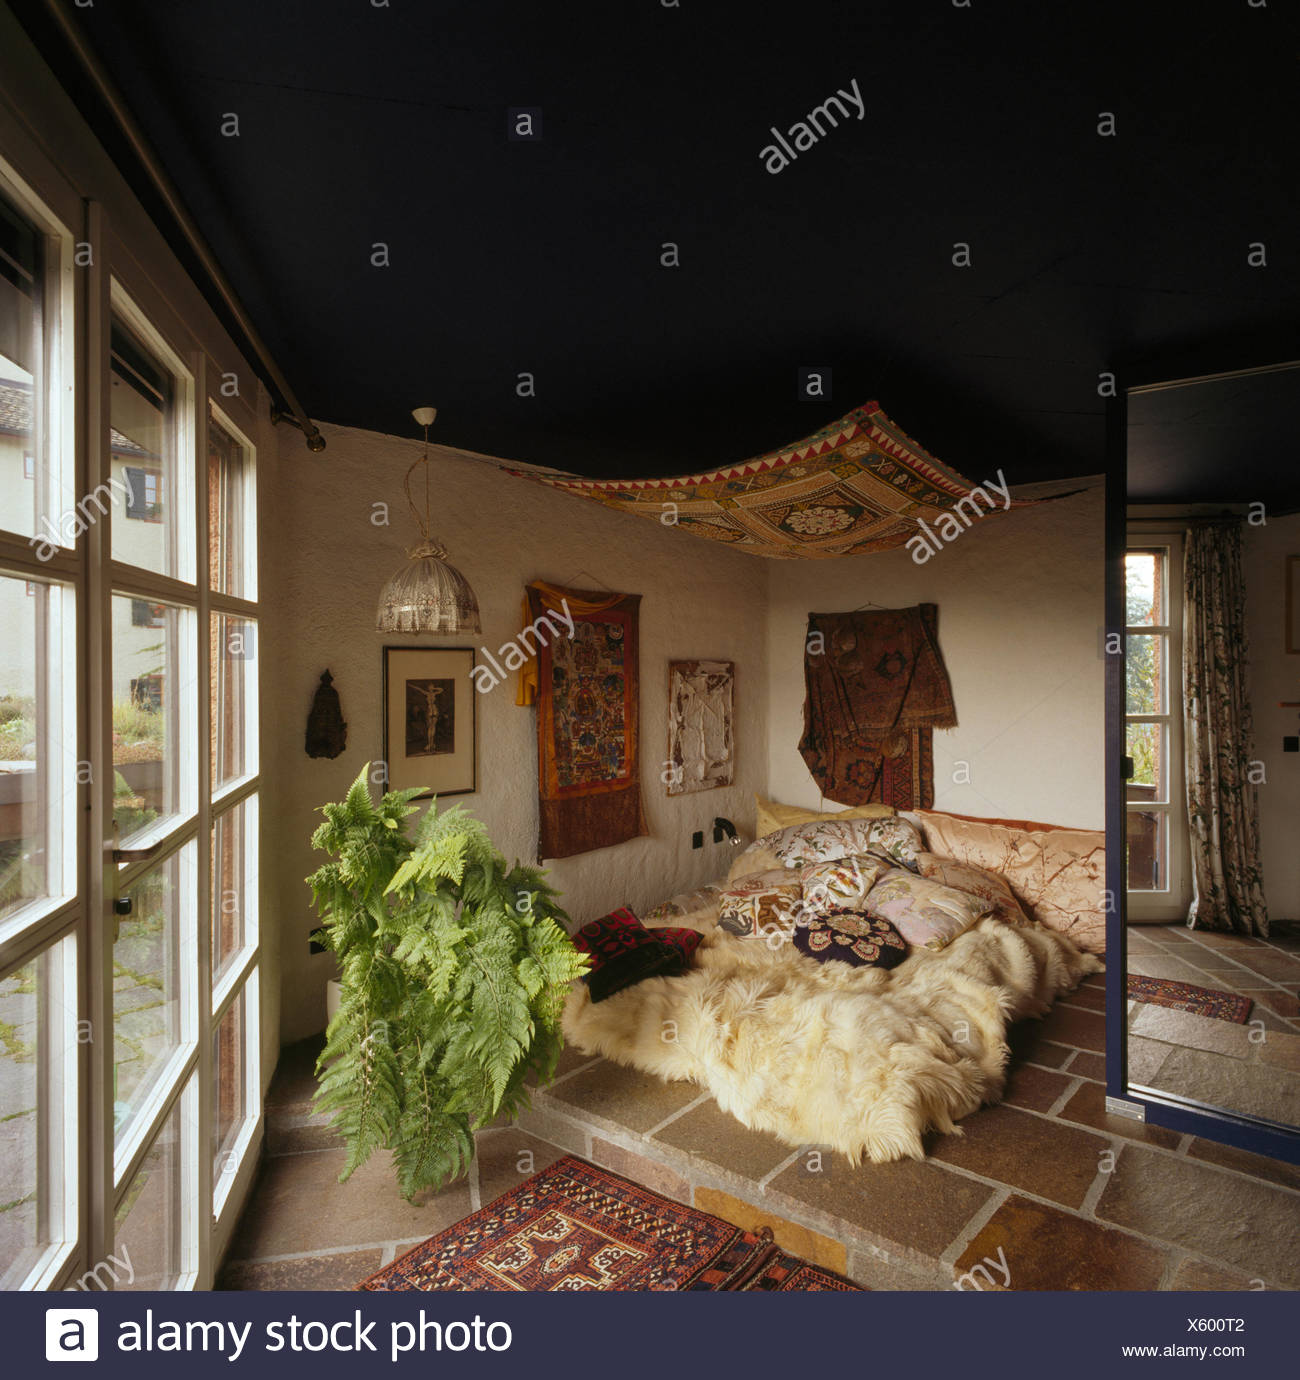 Awning above bed with sheepskin throw in eighties Swedish bedroom - Stock Image